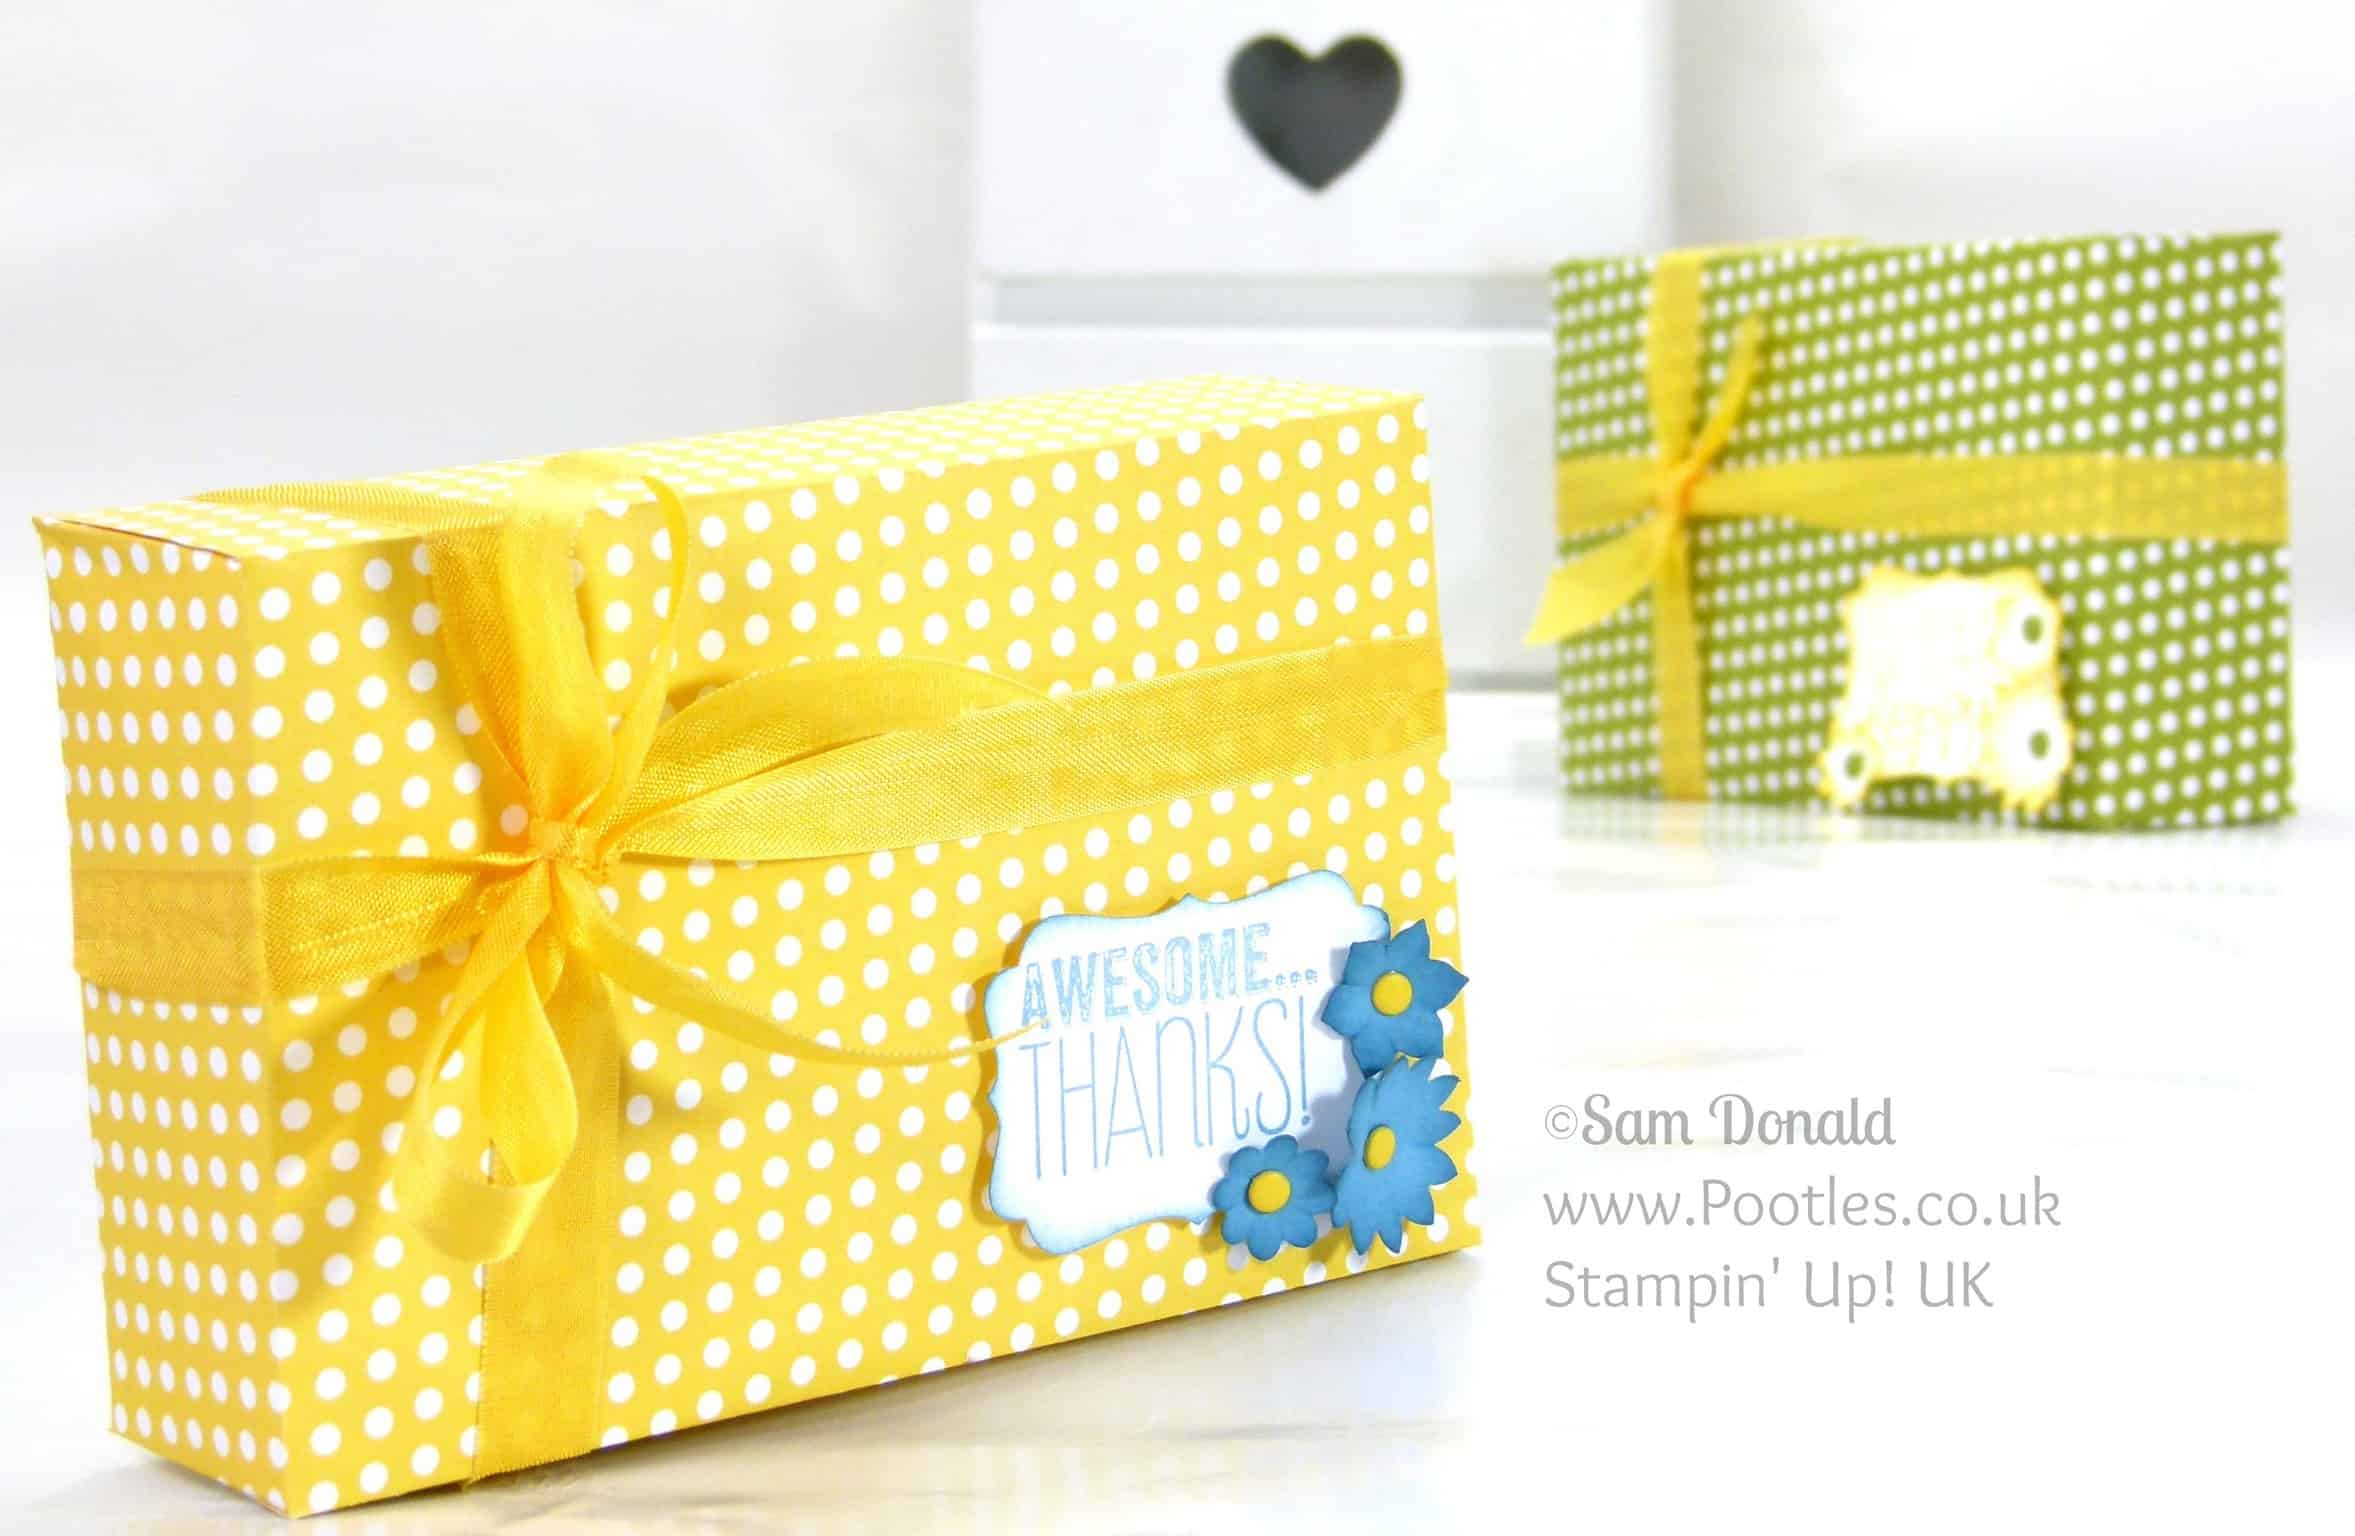 Stampin' Up! UK Independent Demonstrator Pootles. Envelope Punch Board Maltesers Box Tutorial